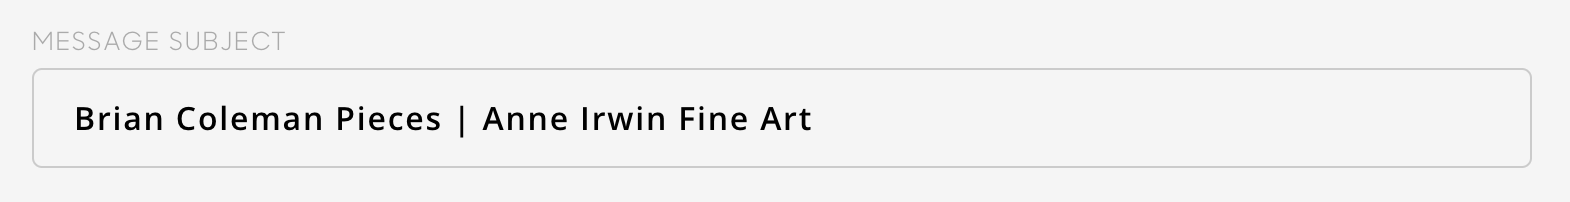 gallery name in subject line of artcloud message